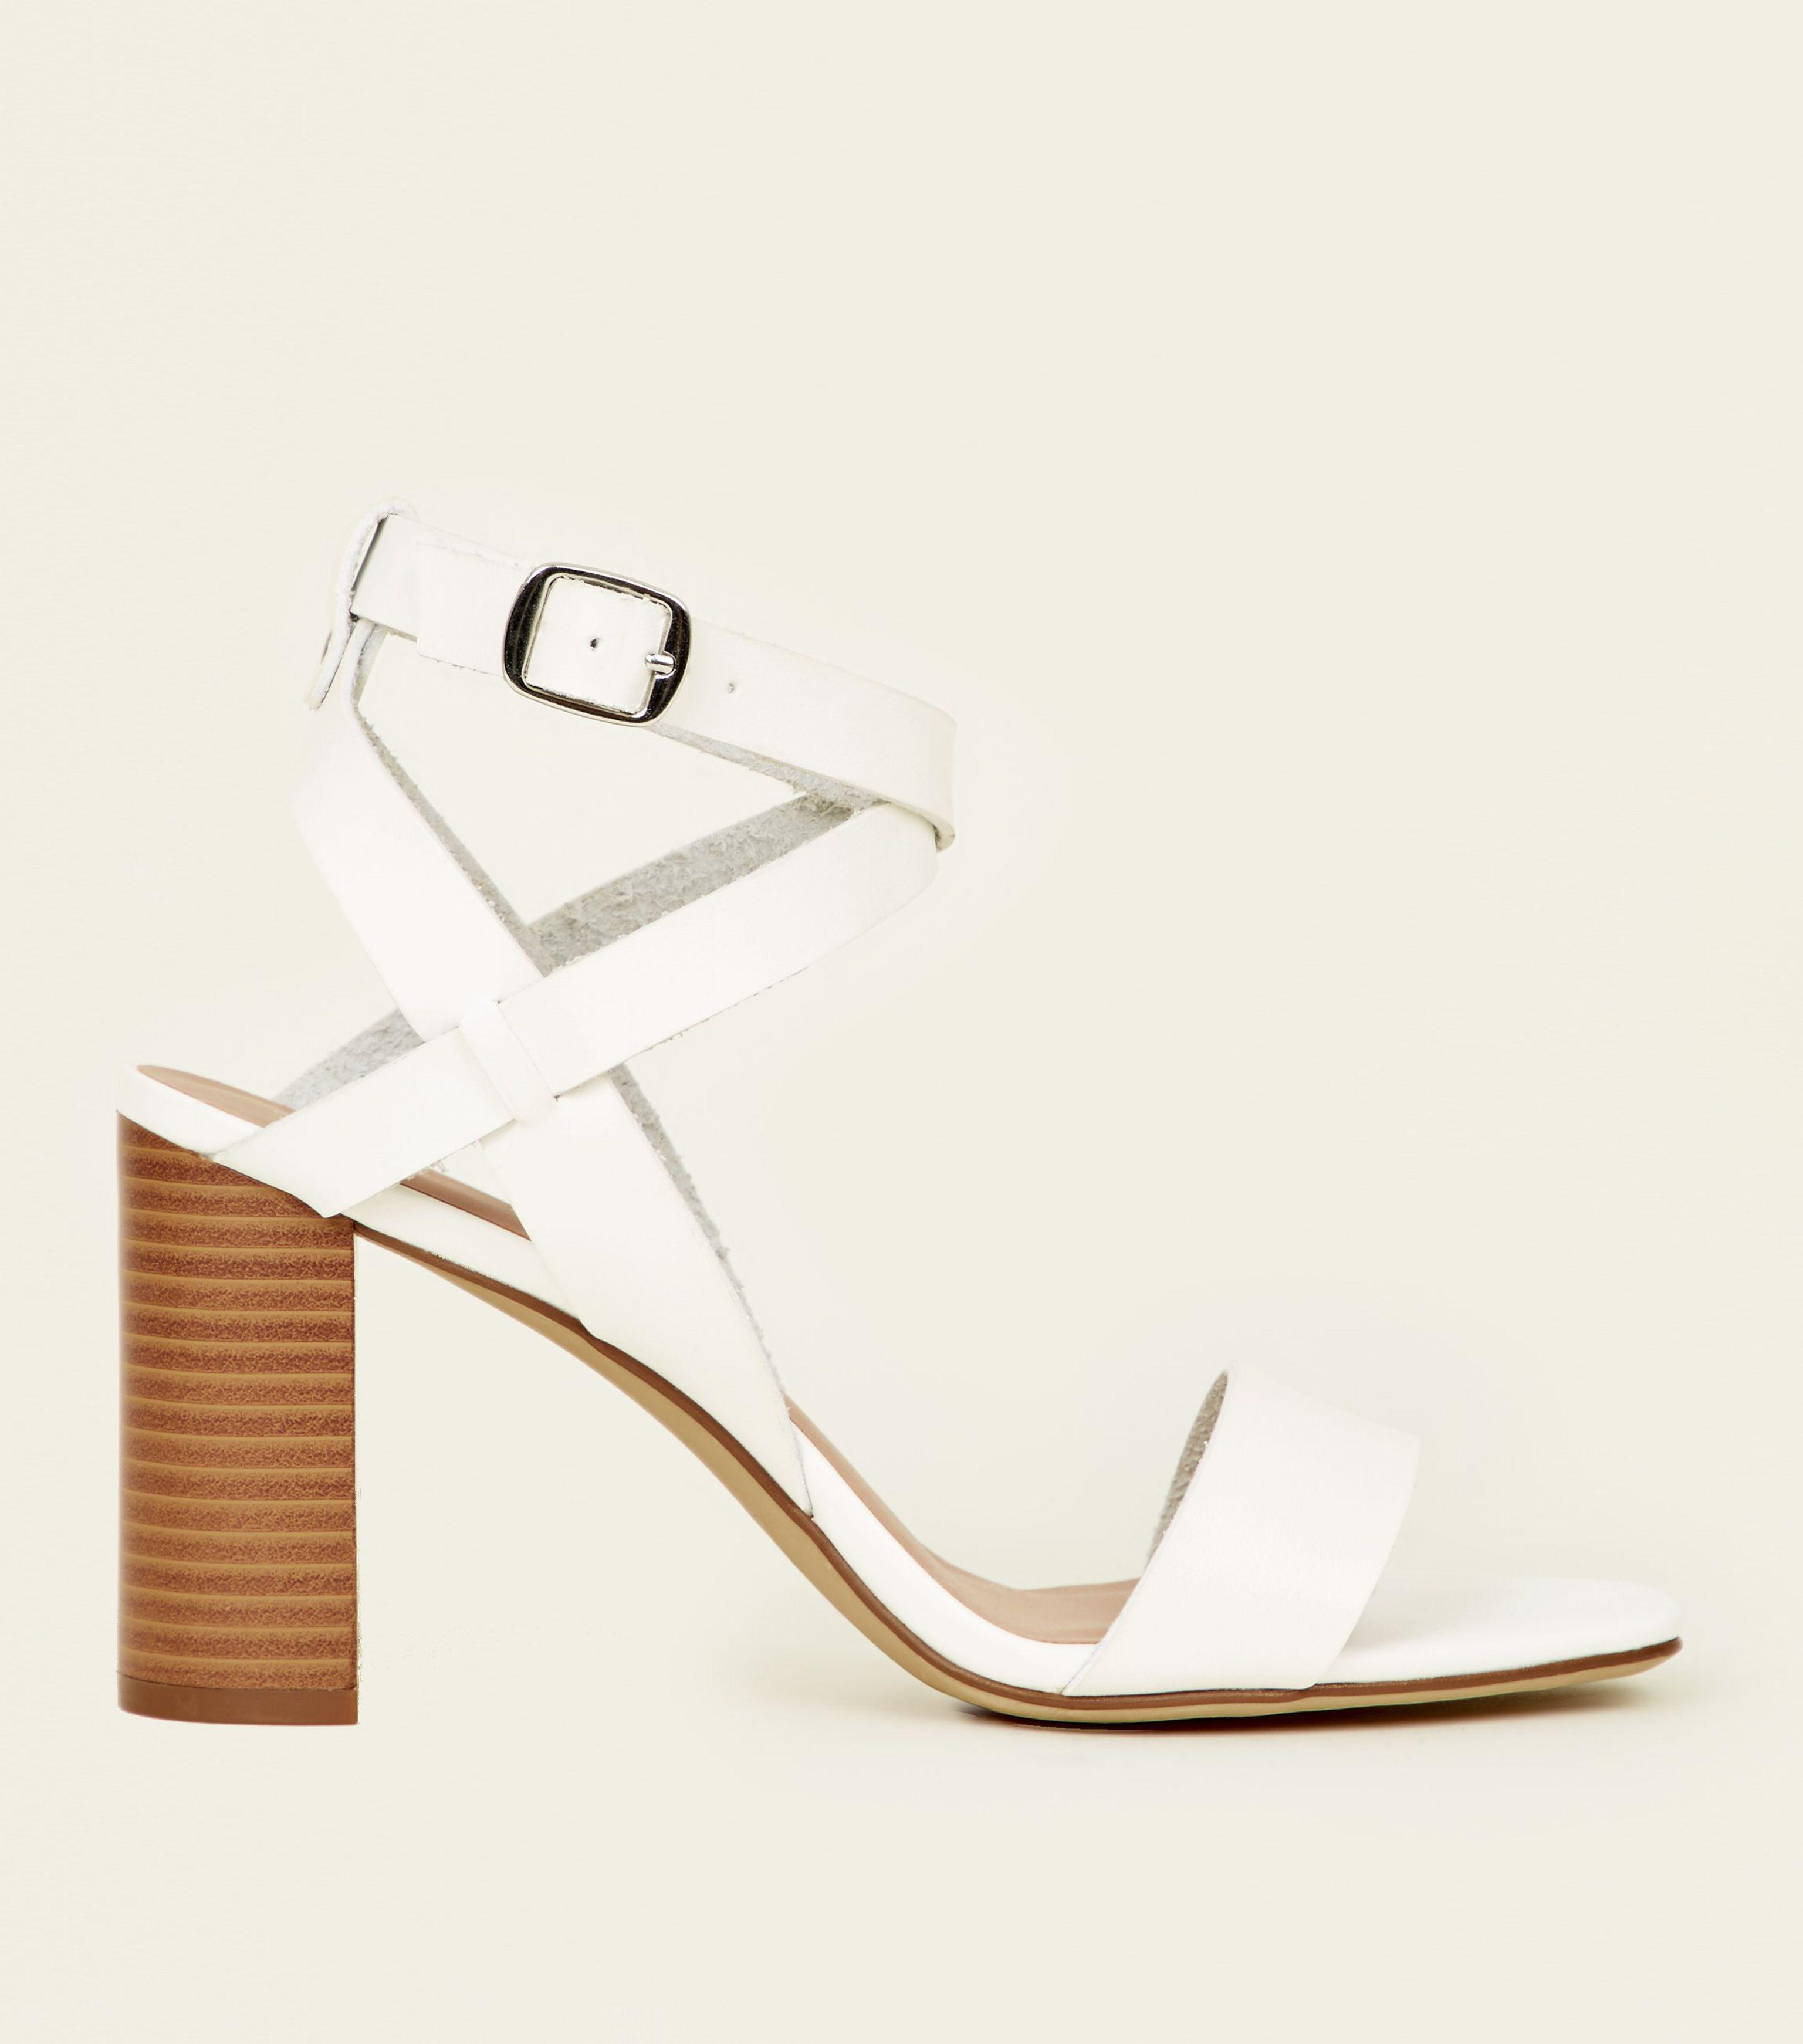 ebfde360f8a New Look White Leather-look Square Toe Block Heel Sandals in White ...